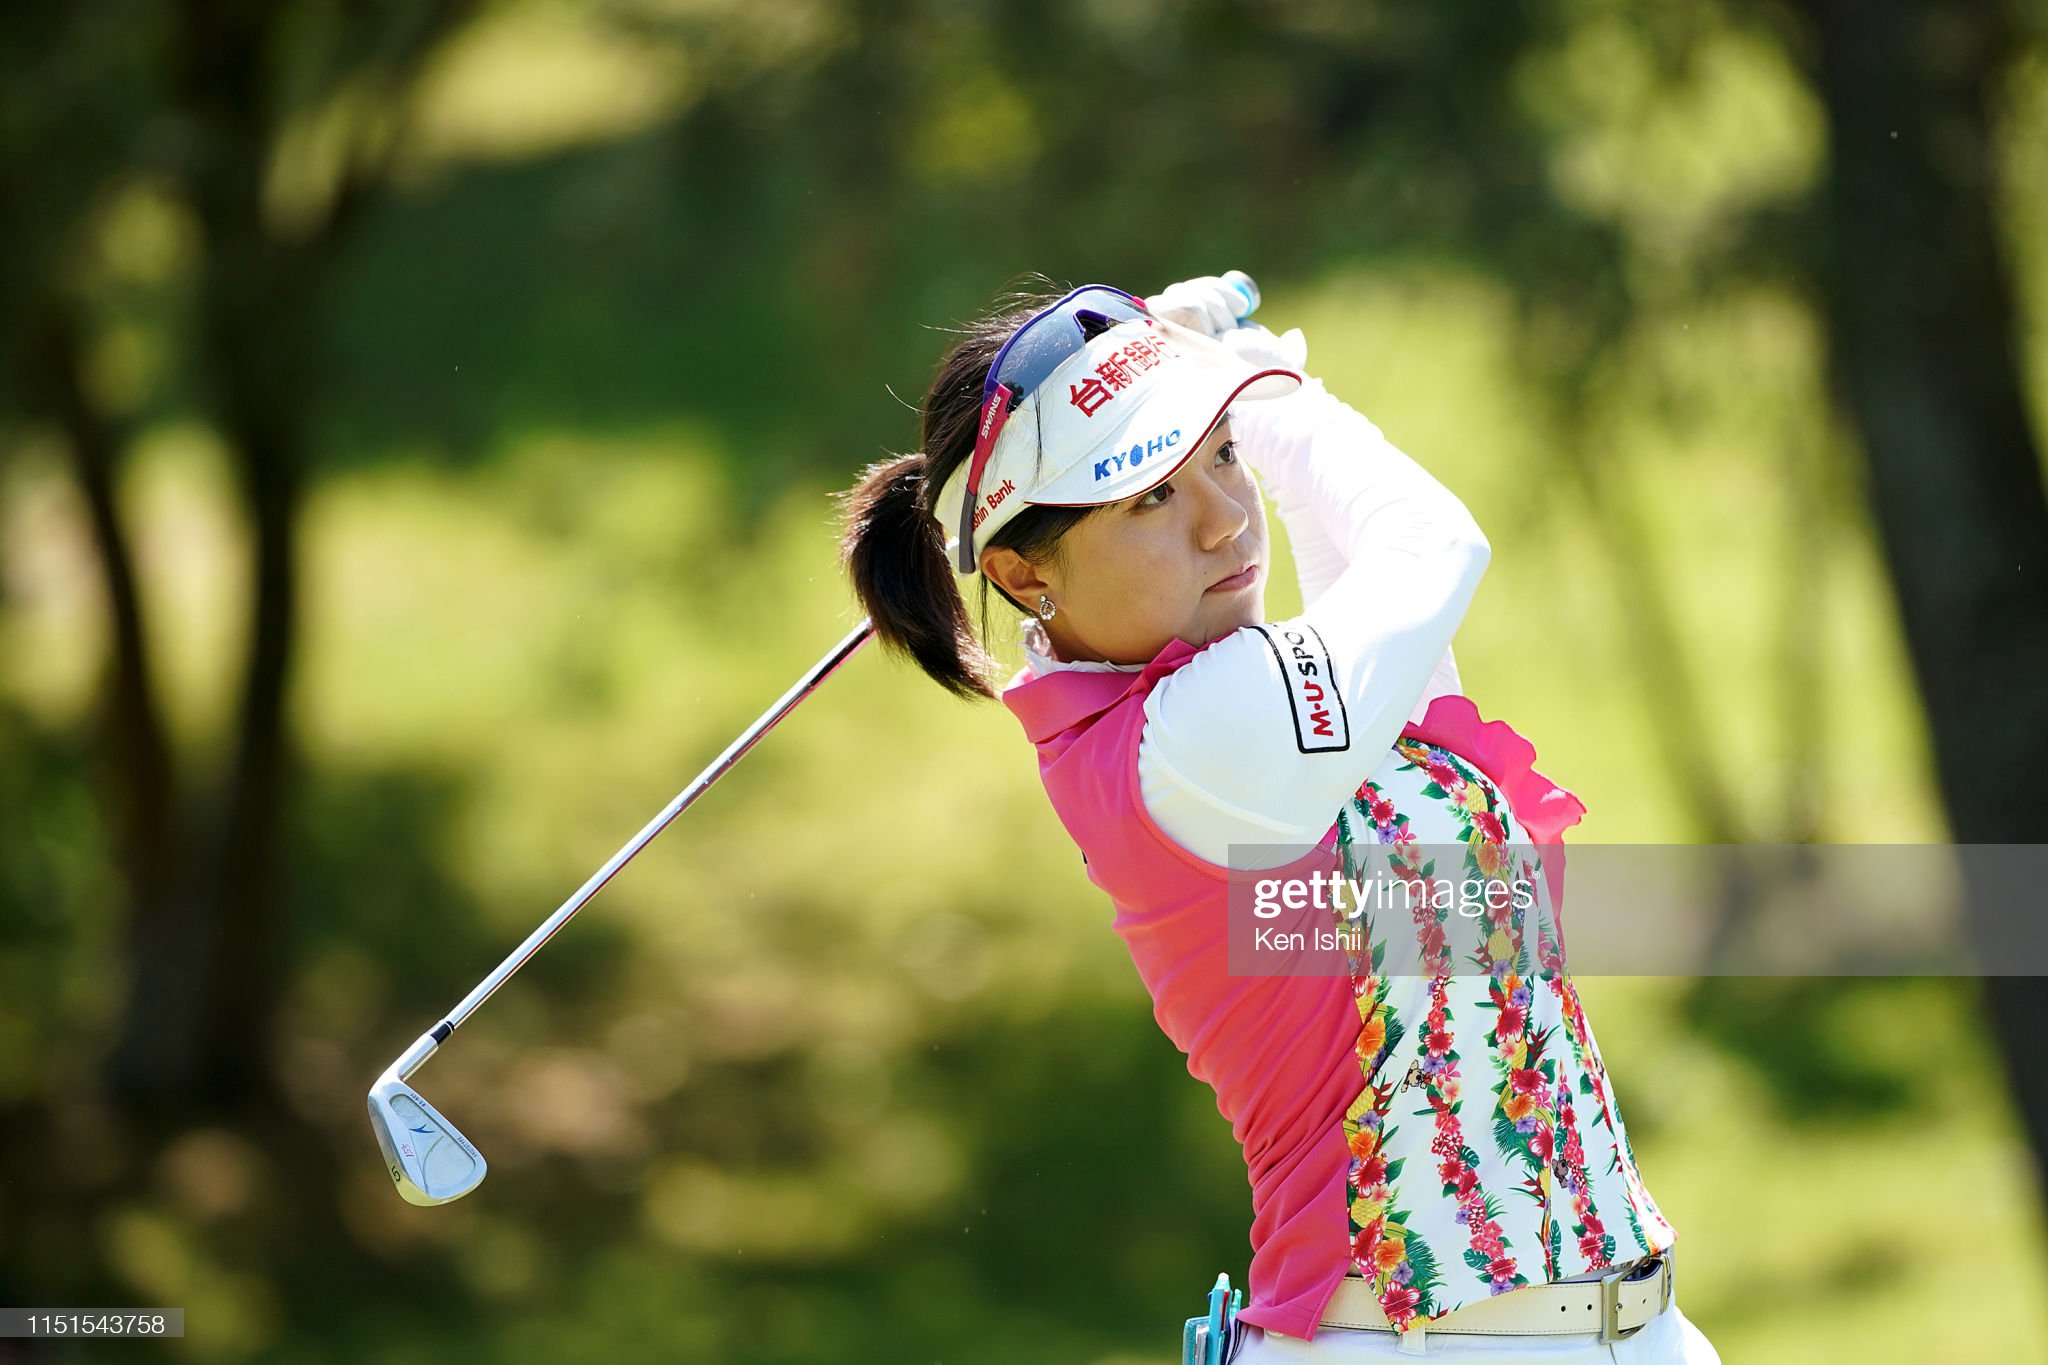 https://media.gettyimages.com/photos/peiying-tsai-of-taiwan-hits-a-tee-shot-on-the-second-hole-during-the-picture-id1151543758?s=2048x2048